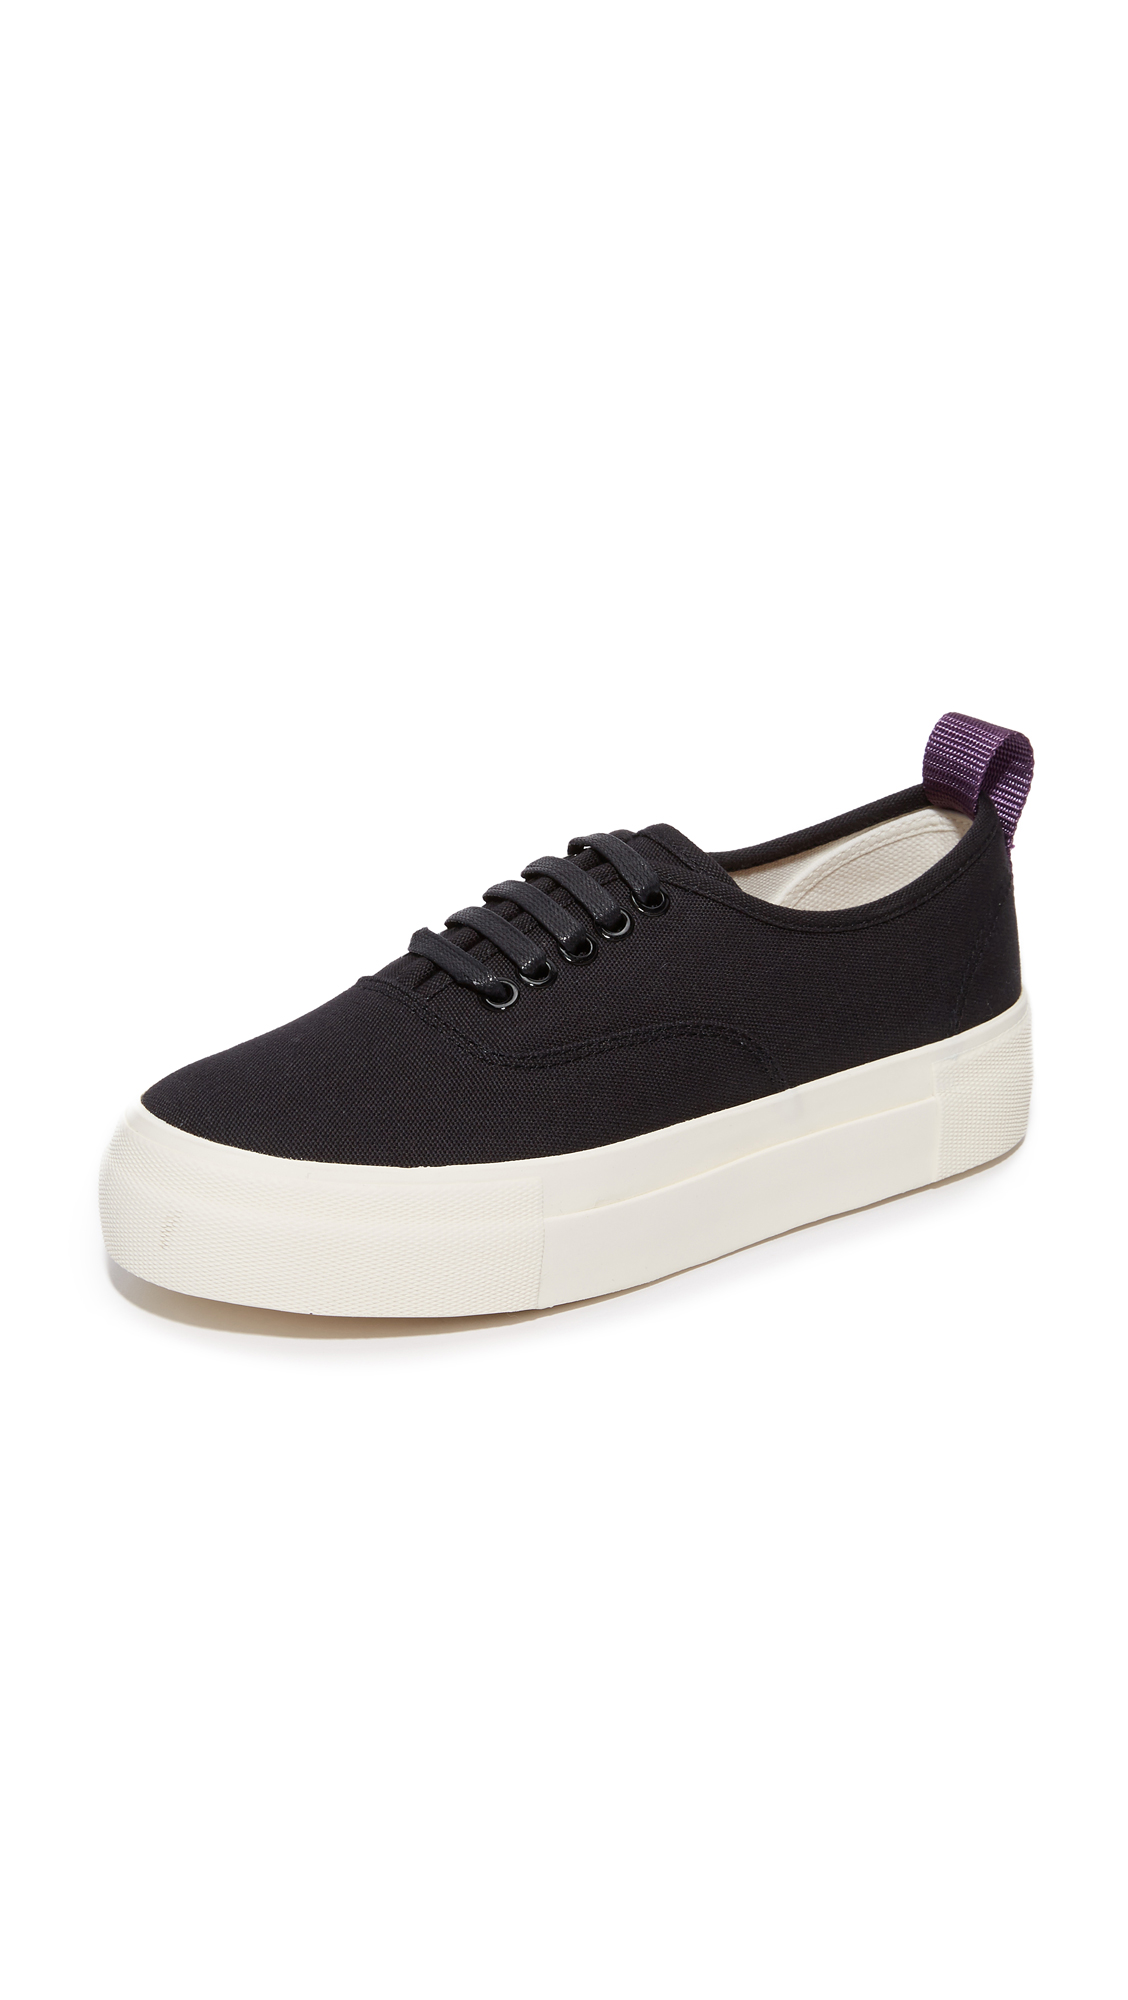 Eytys Mother Canvas Sneakers - Black